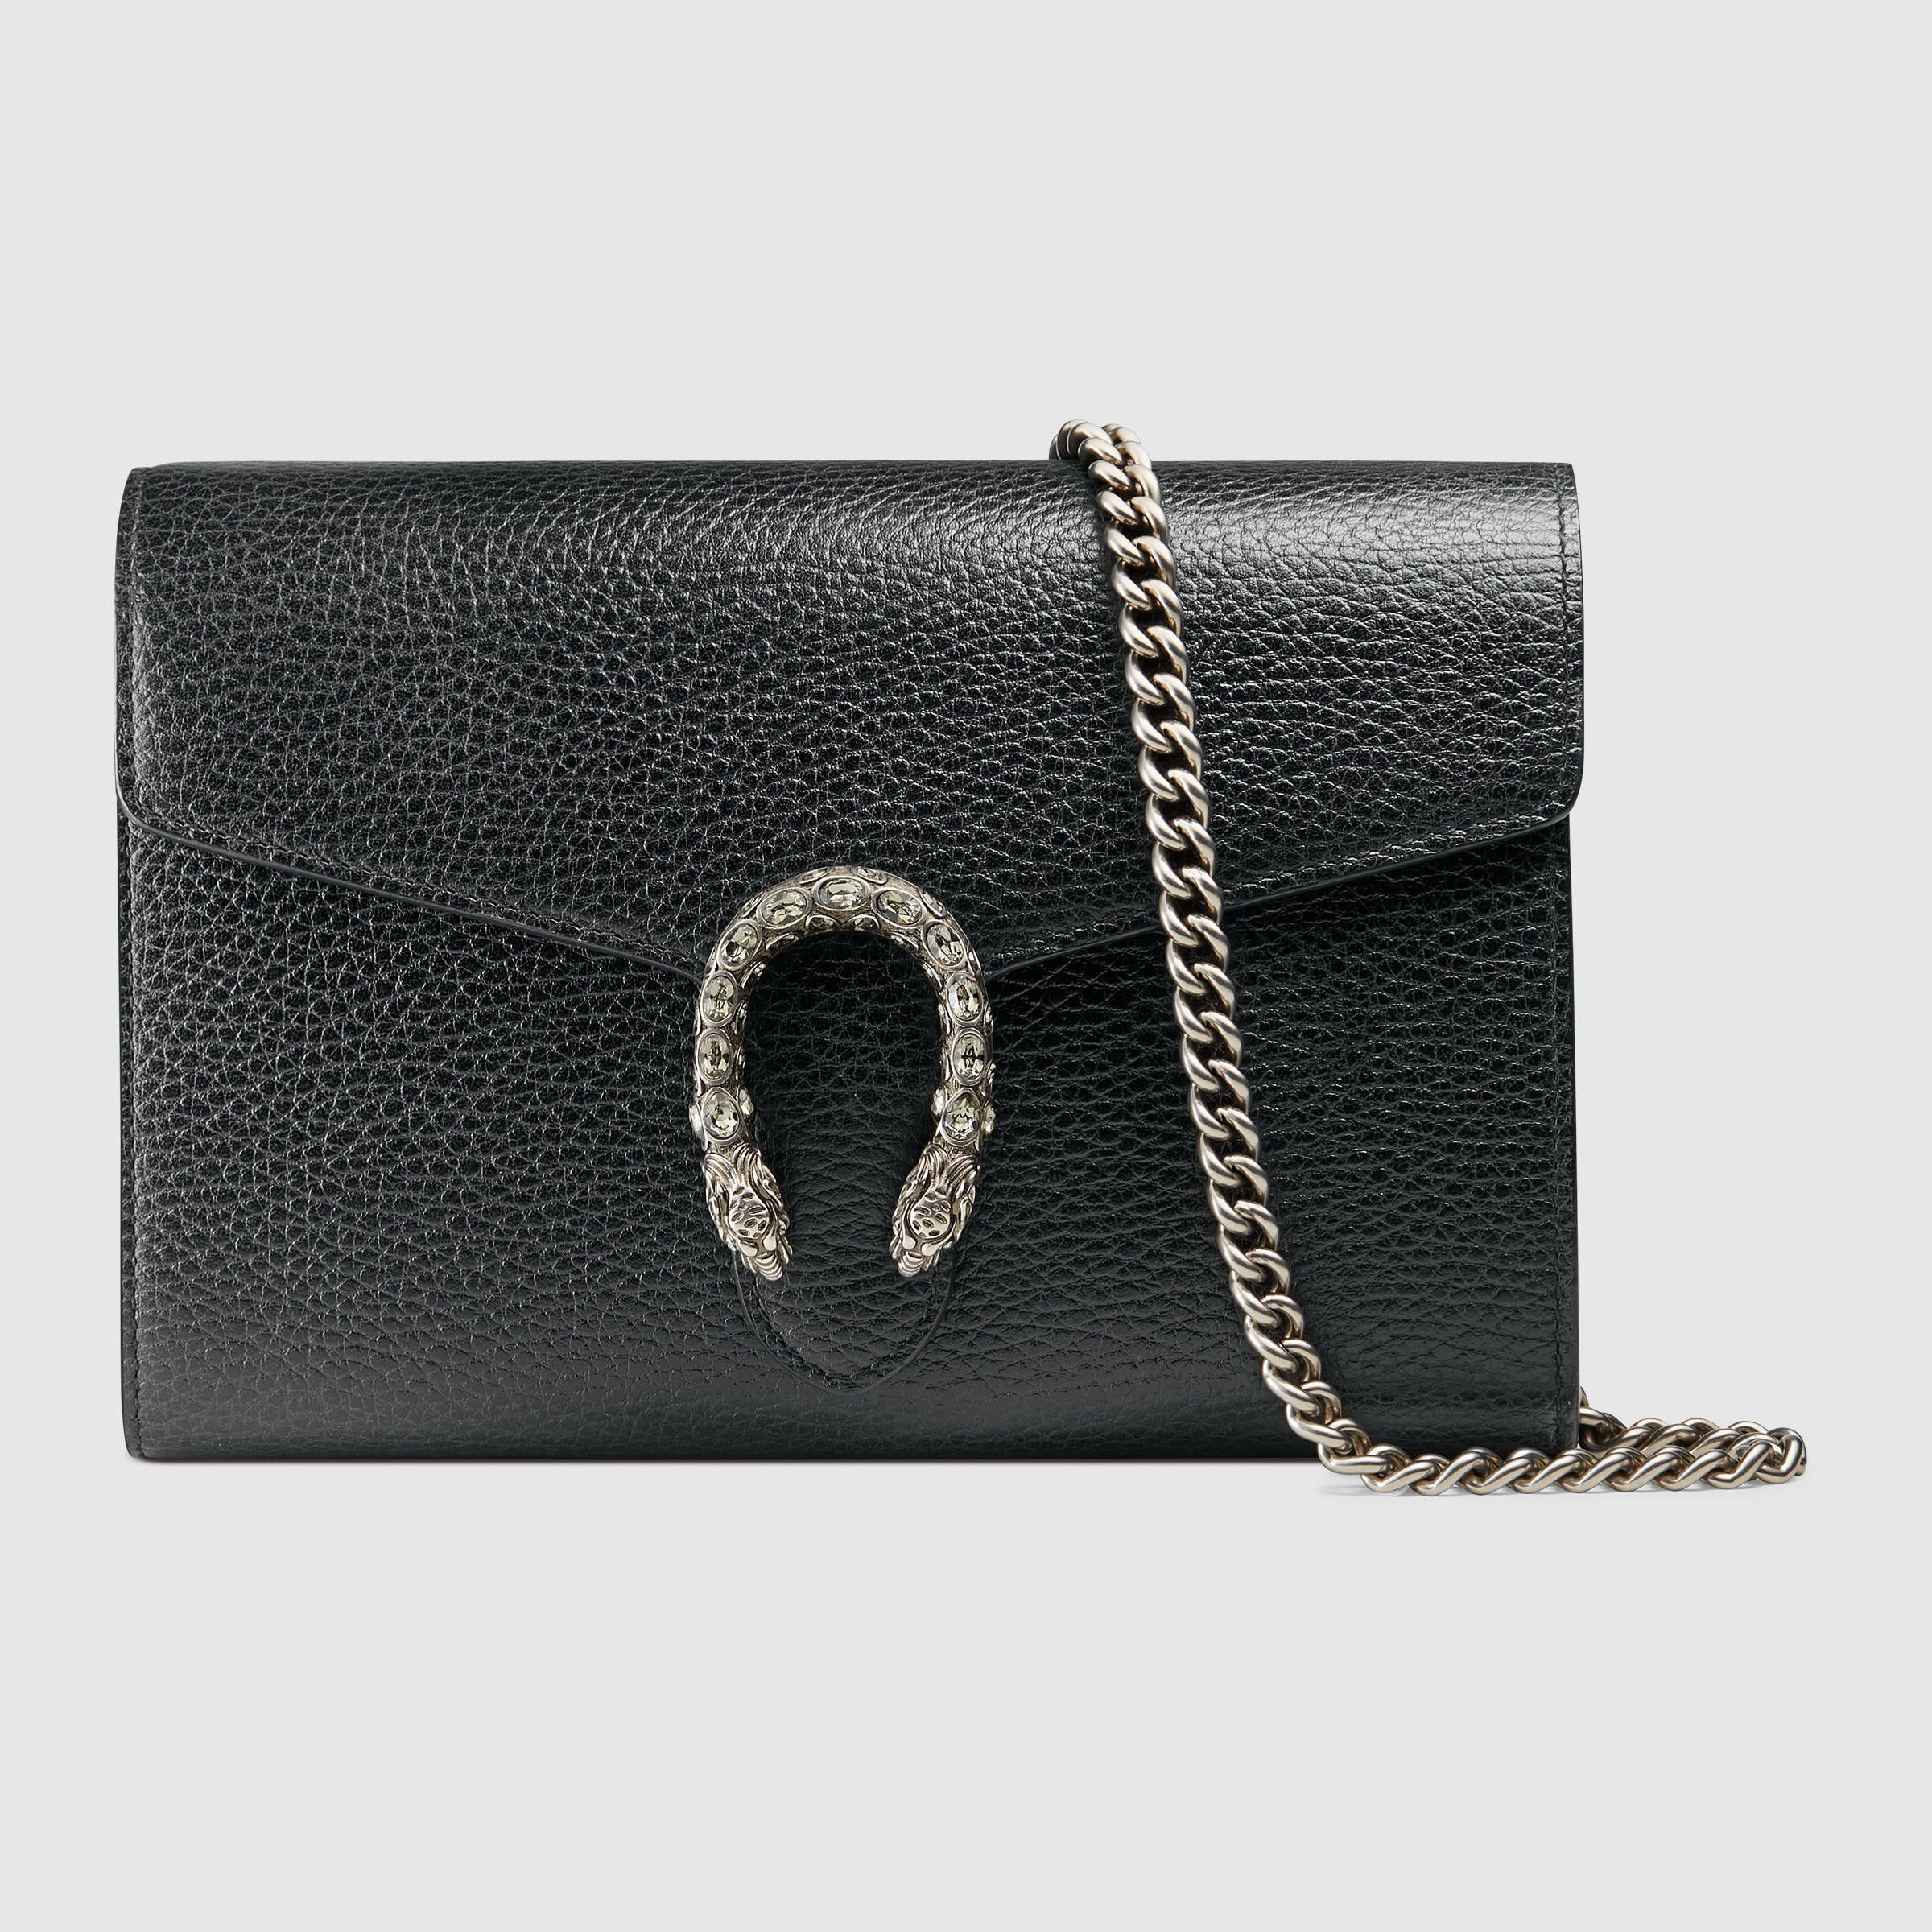 7a0a9c69bd04 Dionysus leather mini chain bag Gucci Dionysus Black, Black Clutch, Black  Wallet, Swarovski